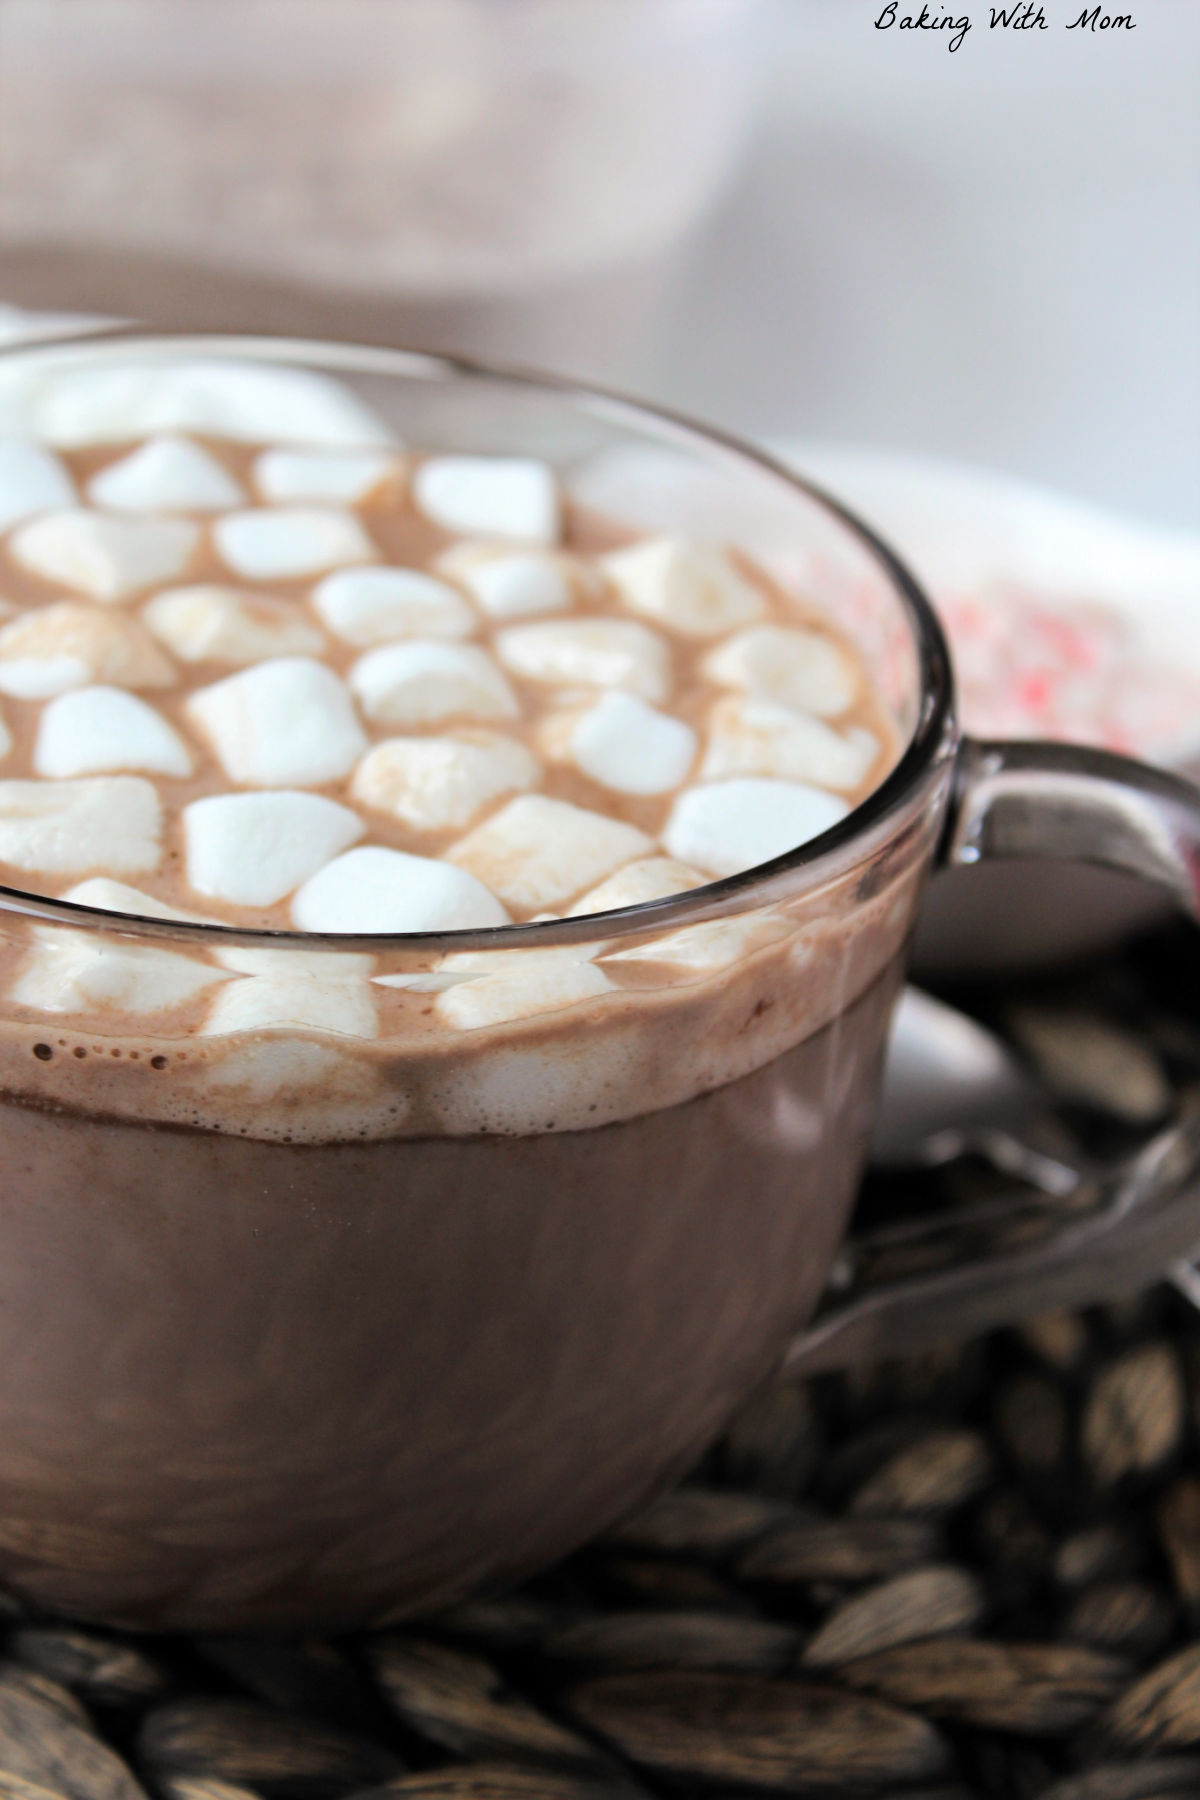 Hot chocolate in a glass cup with marshmallows floating on top